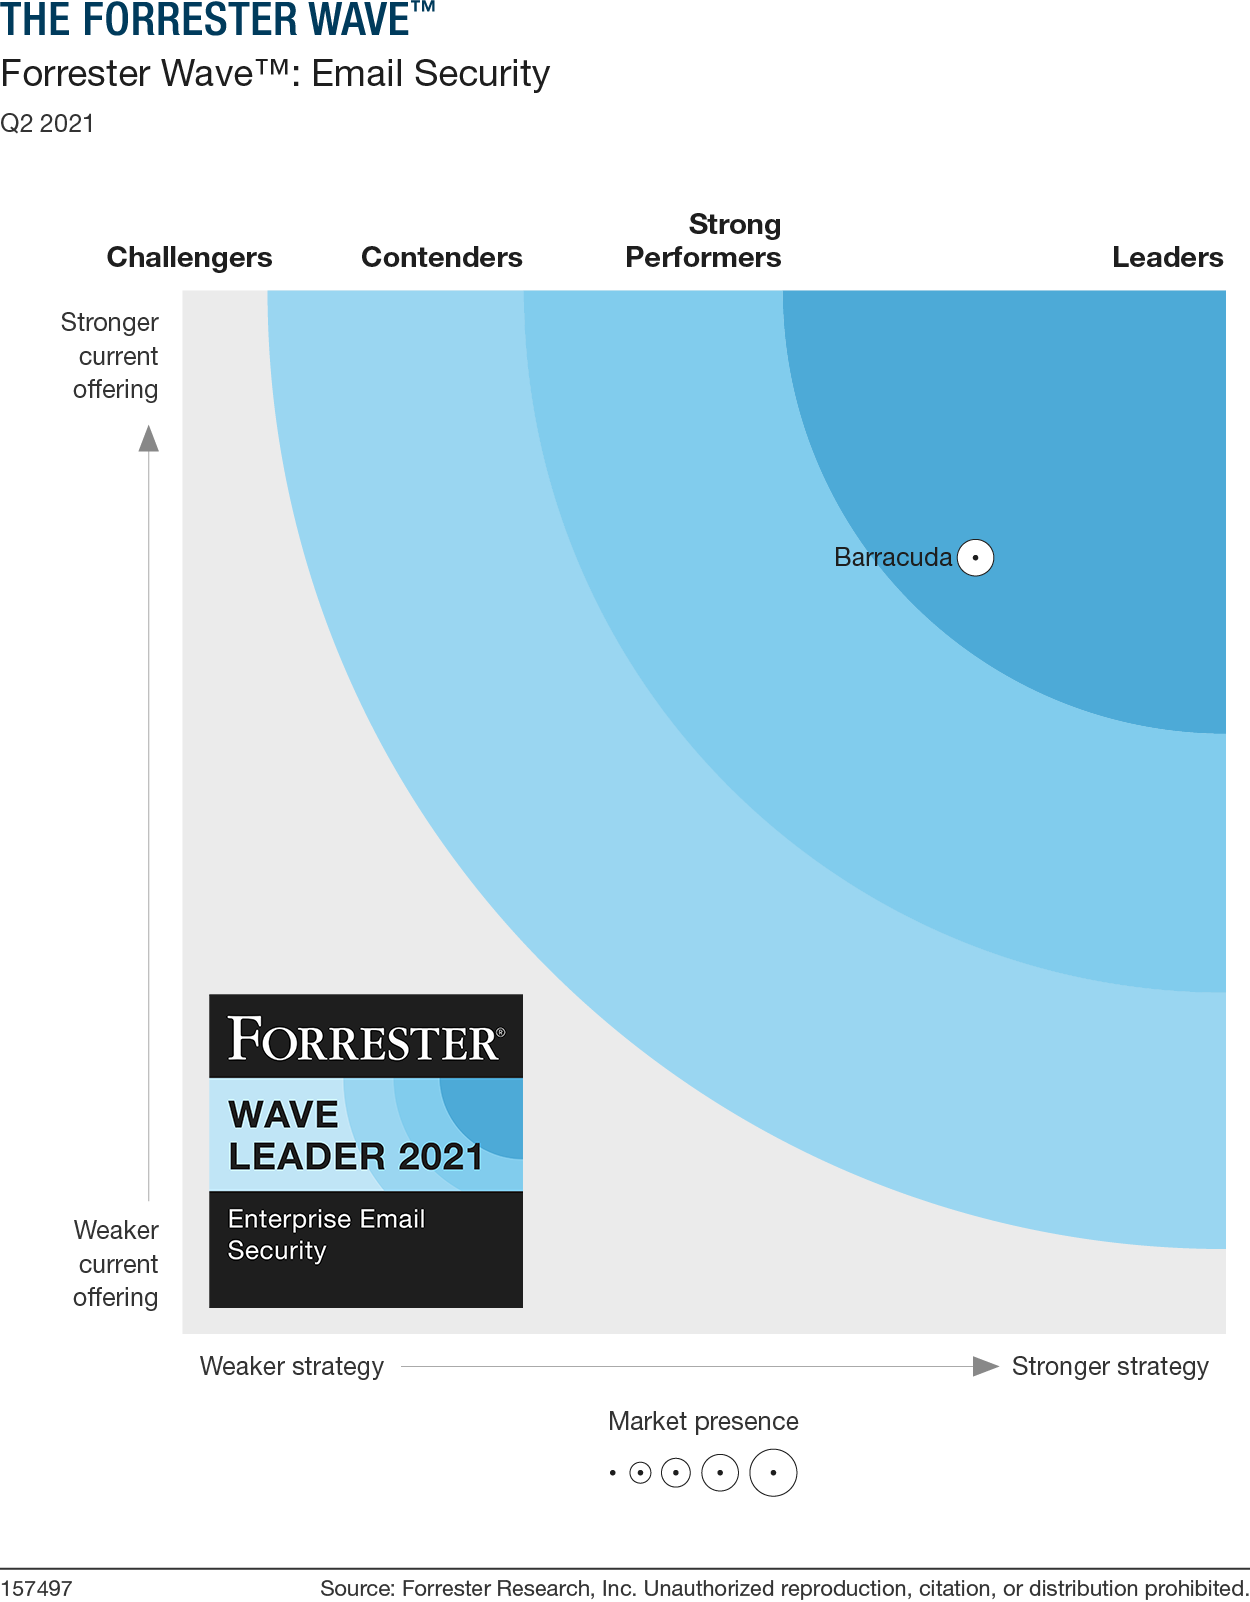 Barracuda in Forrester Wave: Email Security